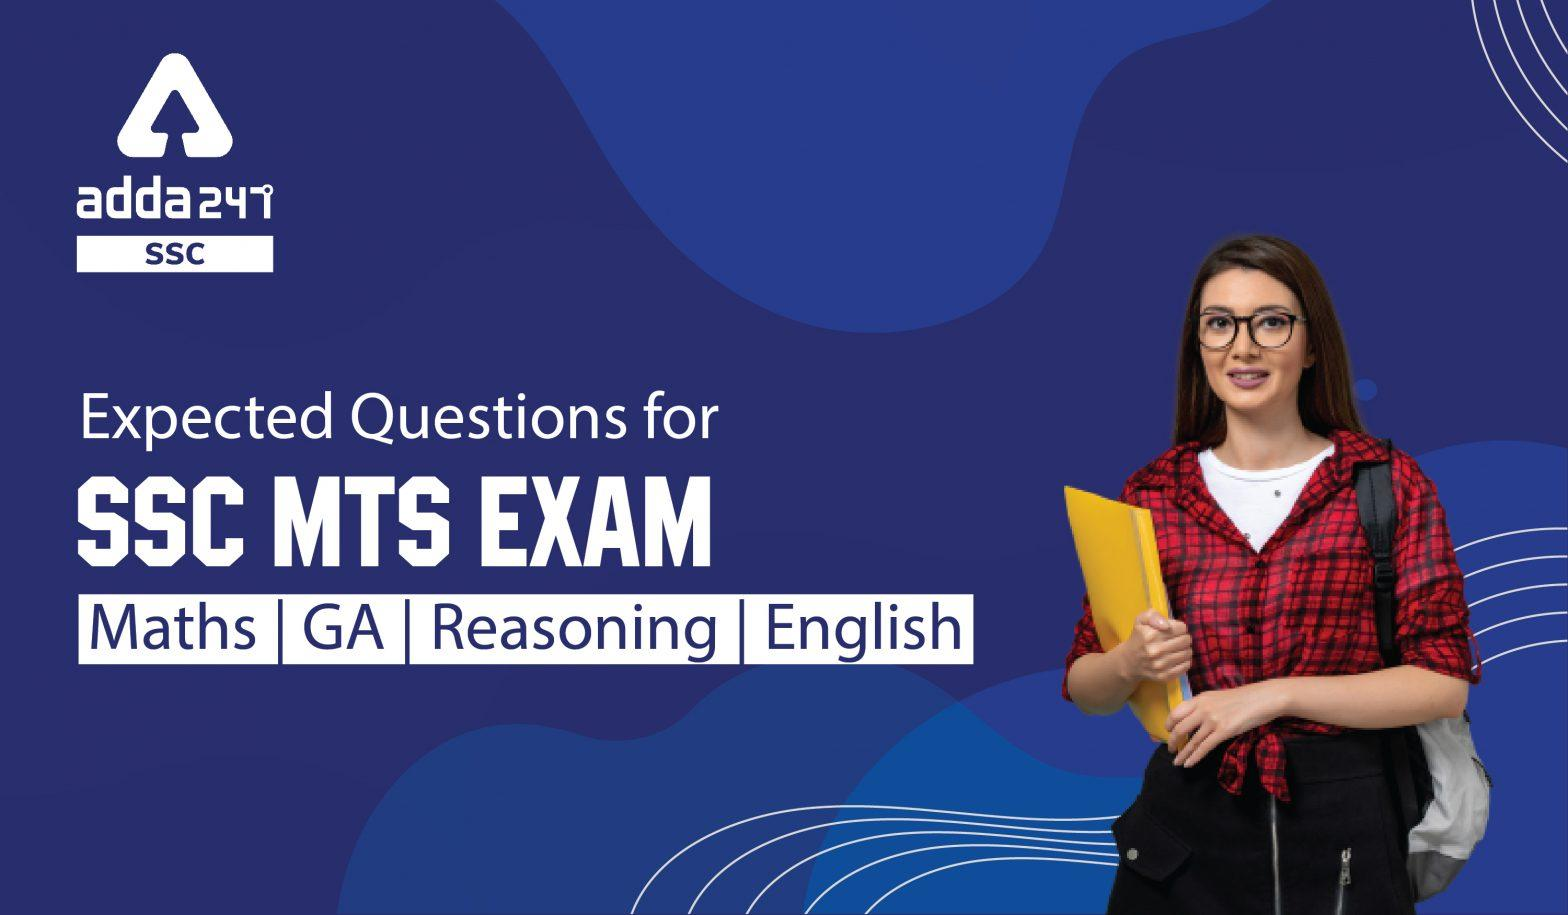 SSC MTS: Expected Questions for SSC MTS Exam: Download PDF Now_40.1